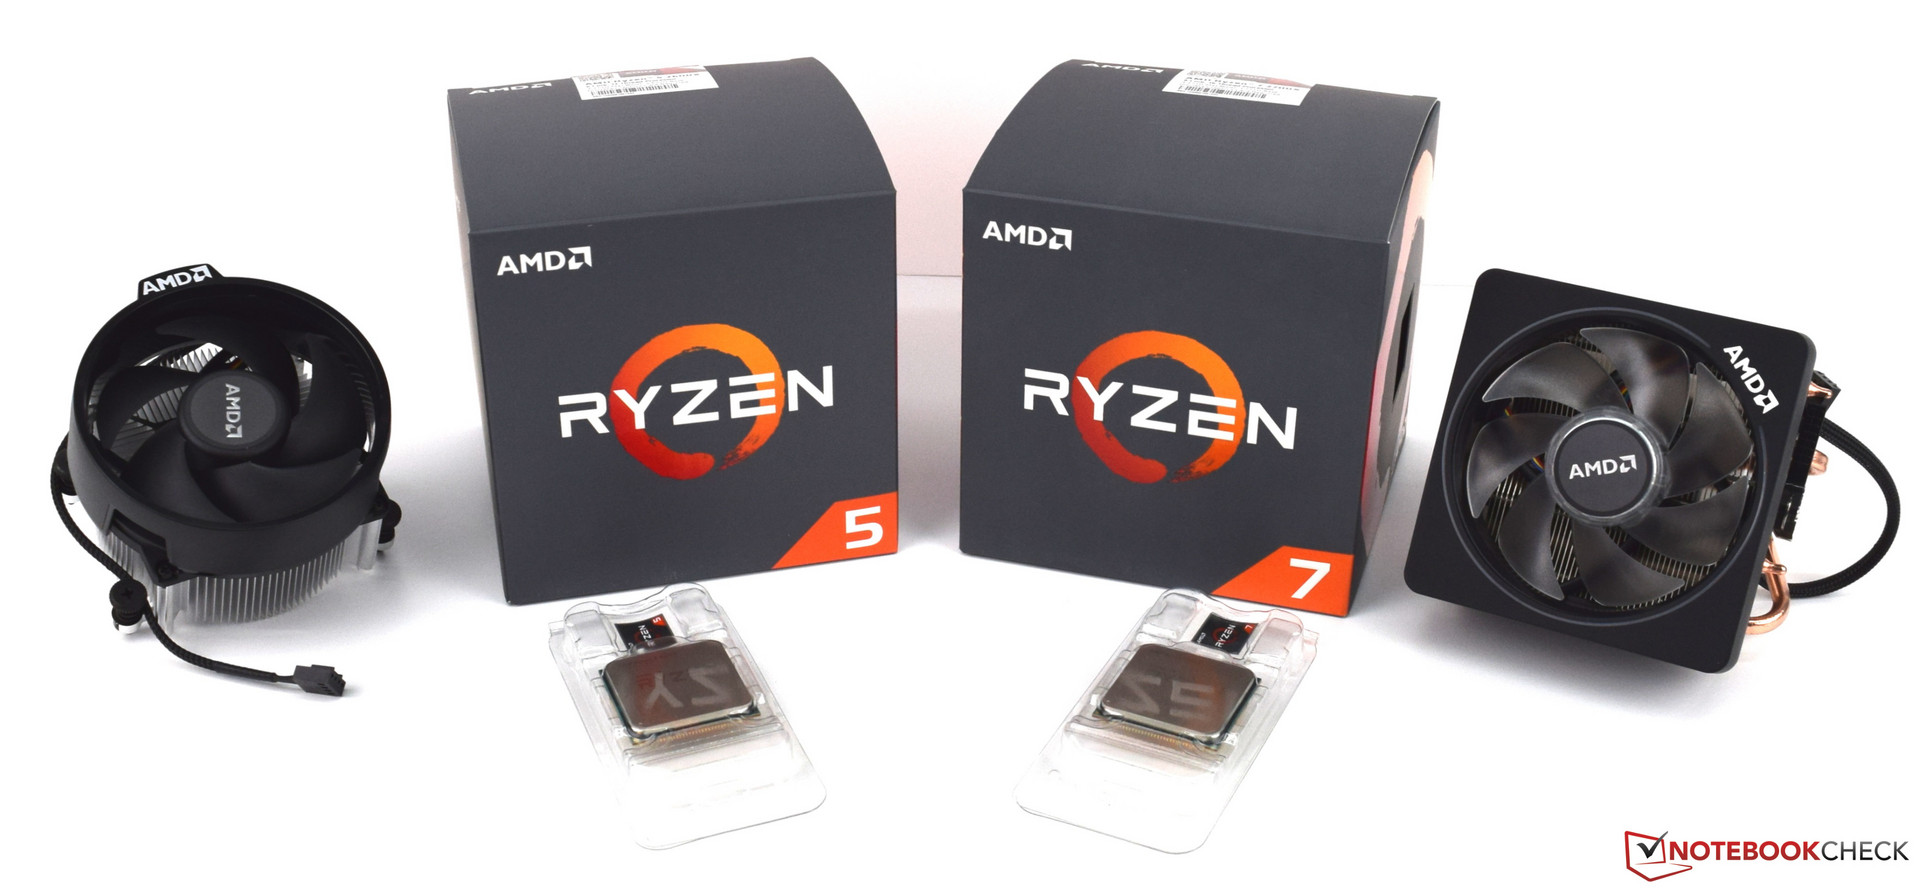 We may still see a Ryzen 7 2800X at a later date, says AMD's Jim